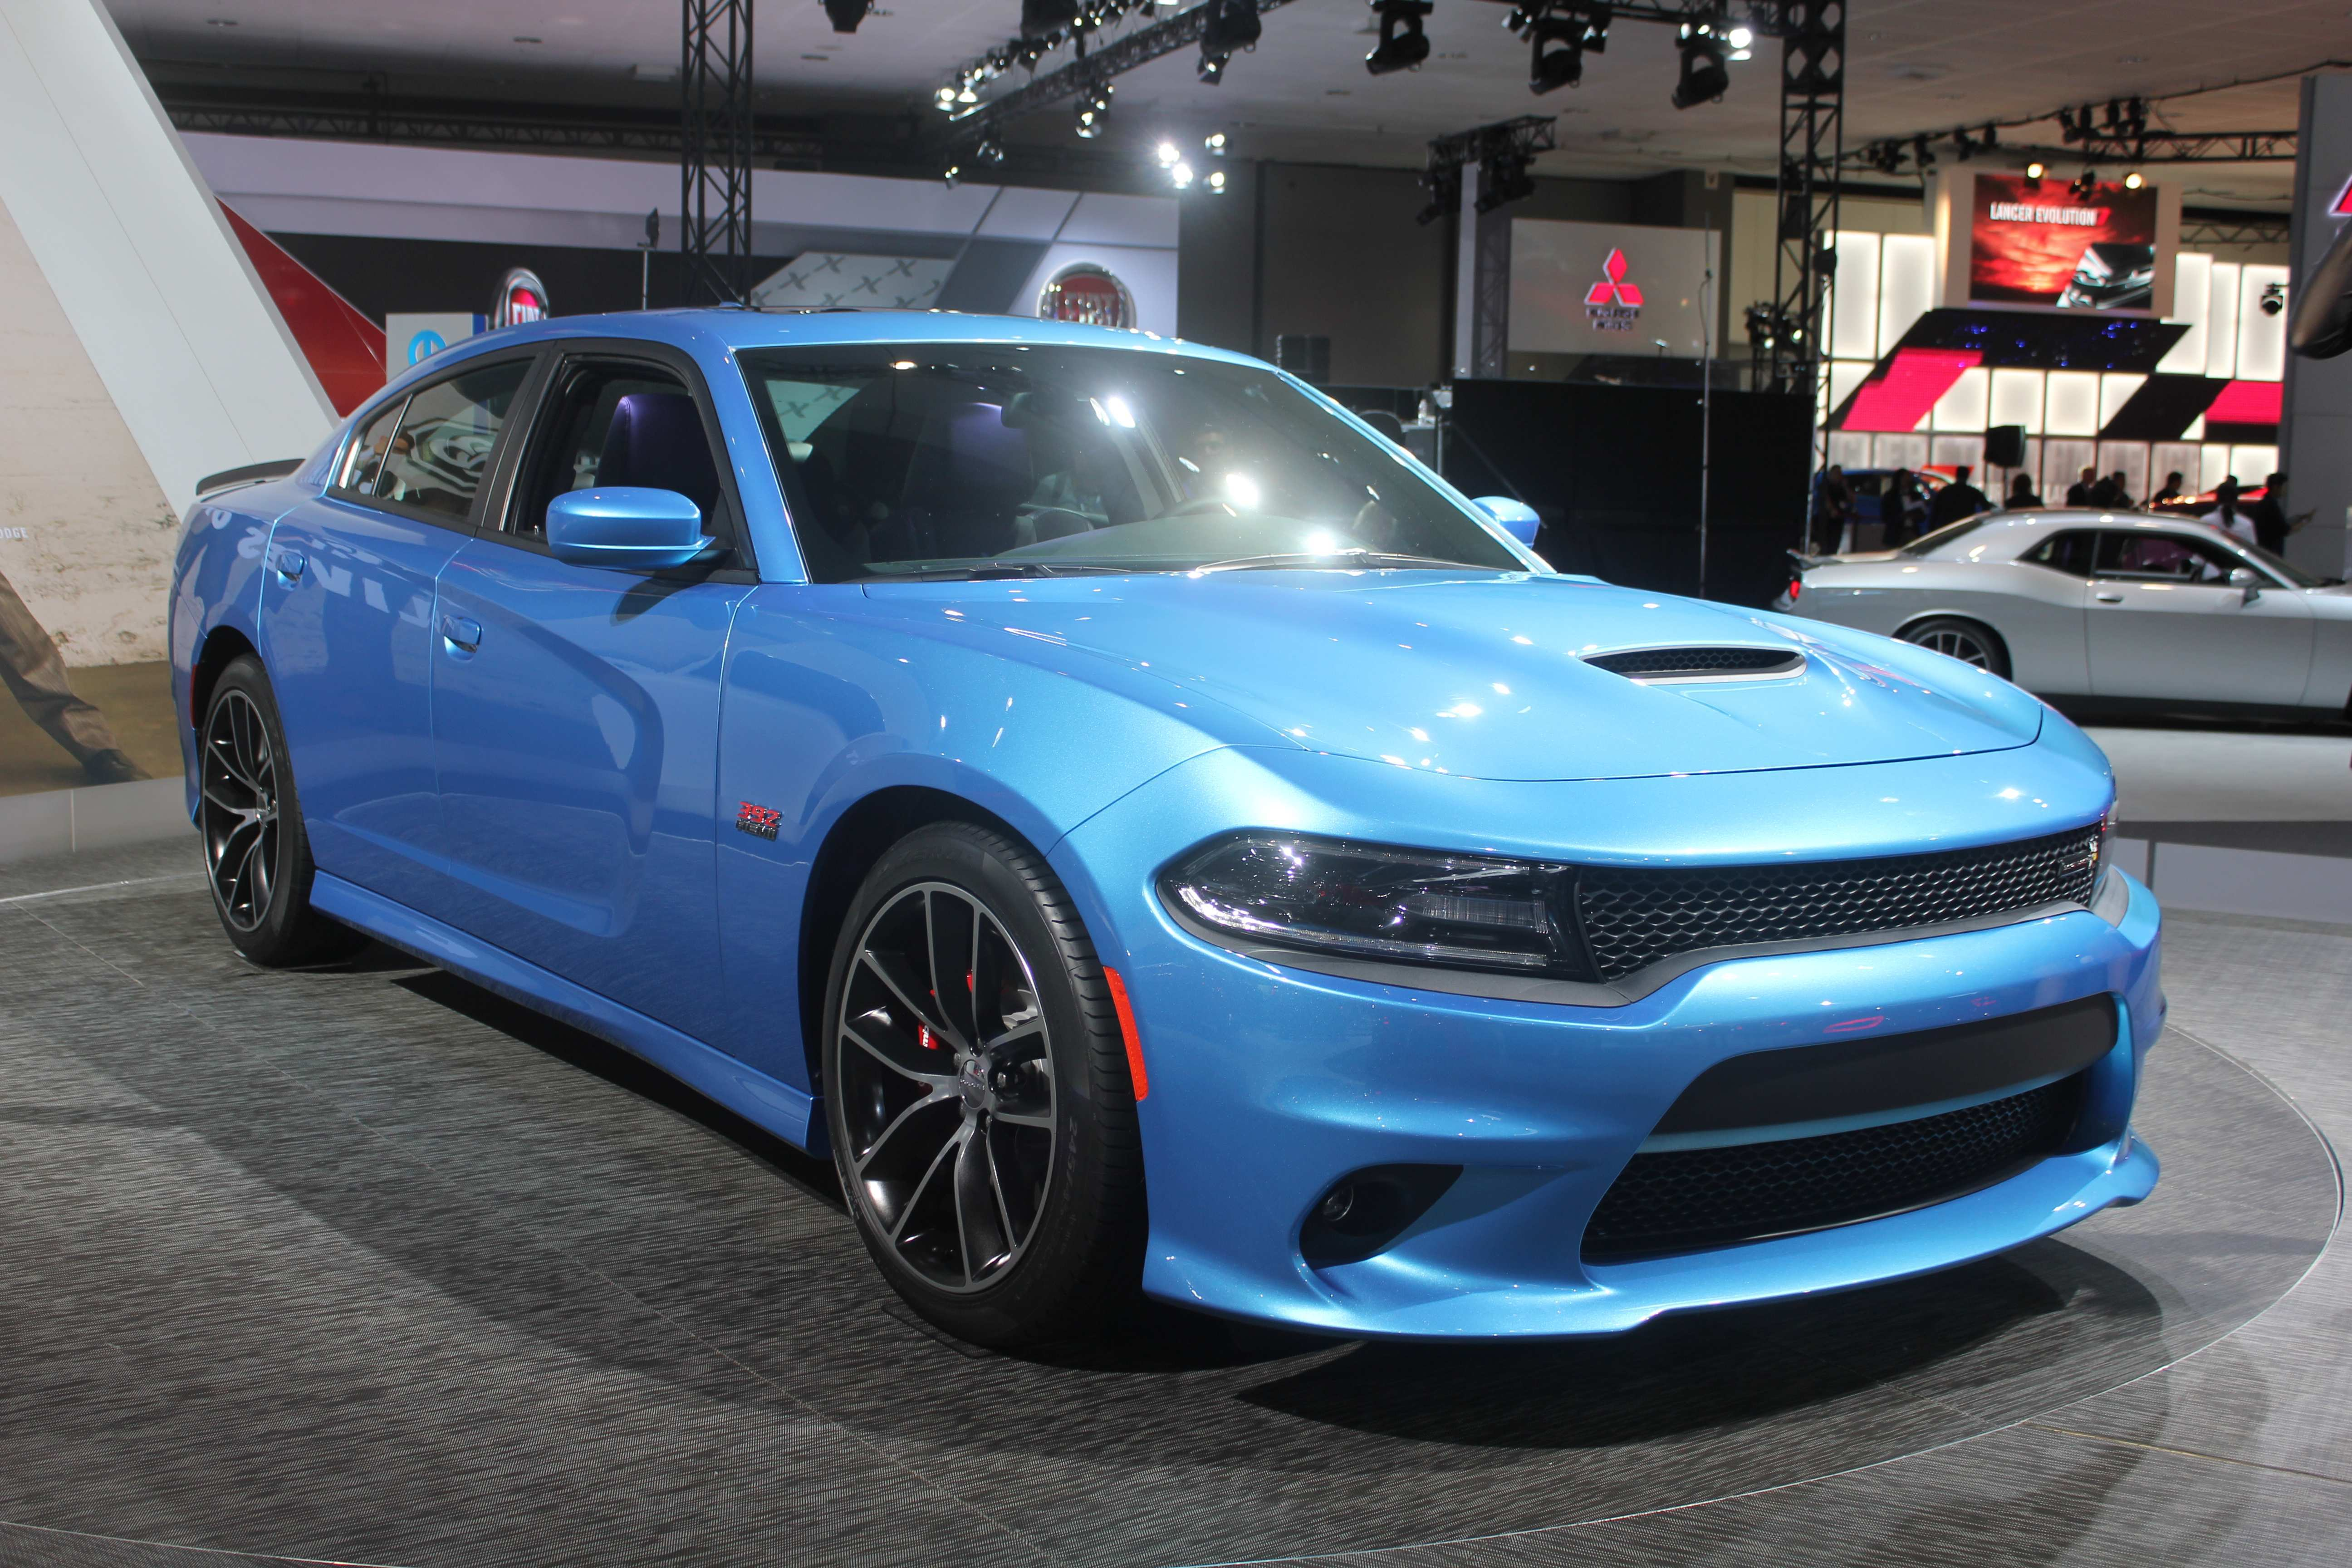 56 Gallery of 2020 Dodge Charger Srt 8 Reviews with 2020 Dodge Charger Srt 8